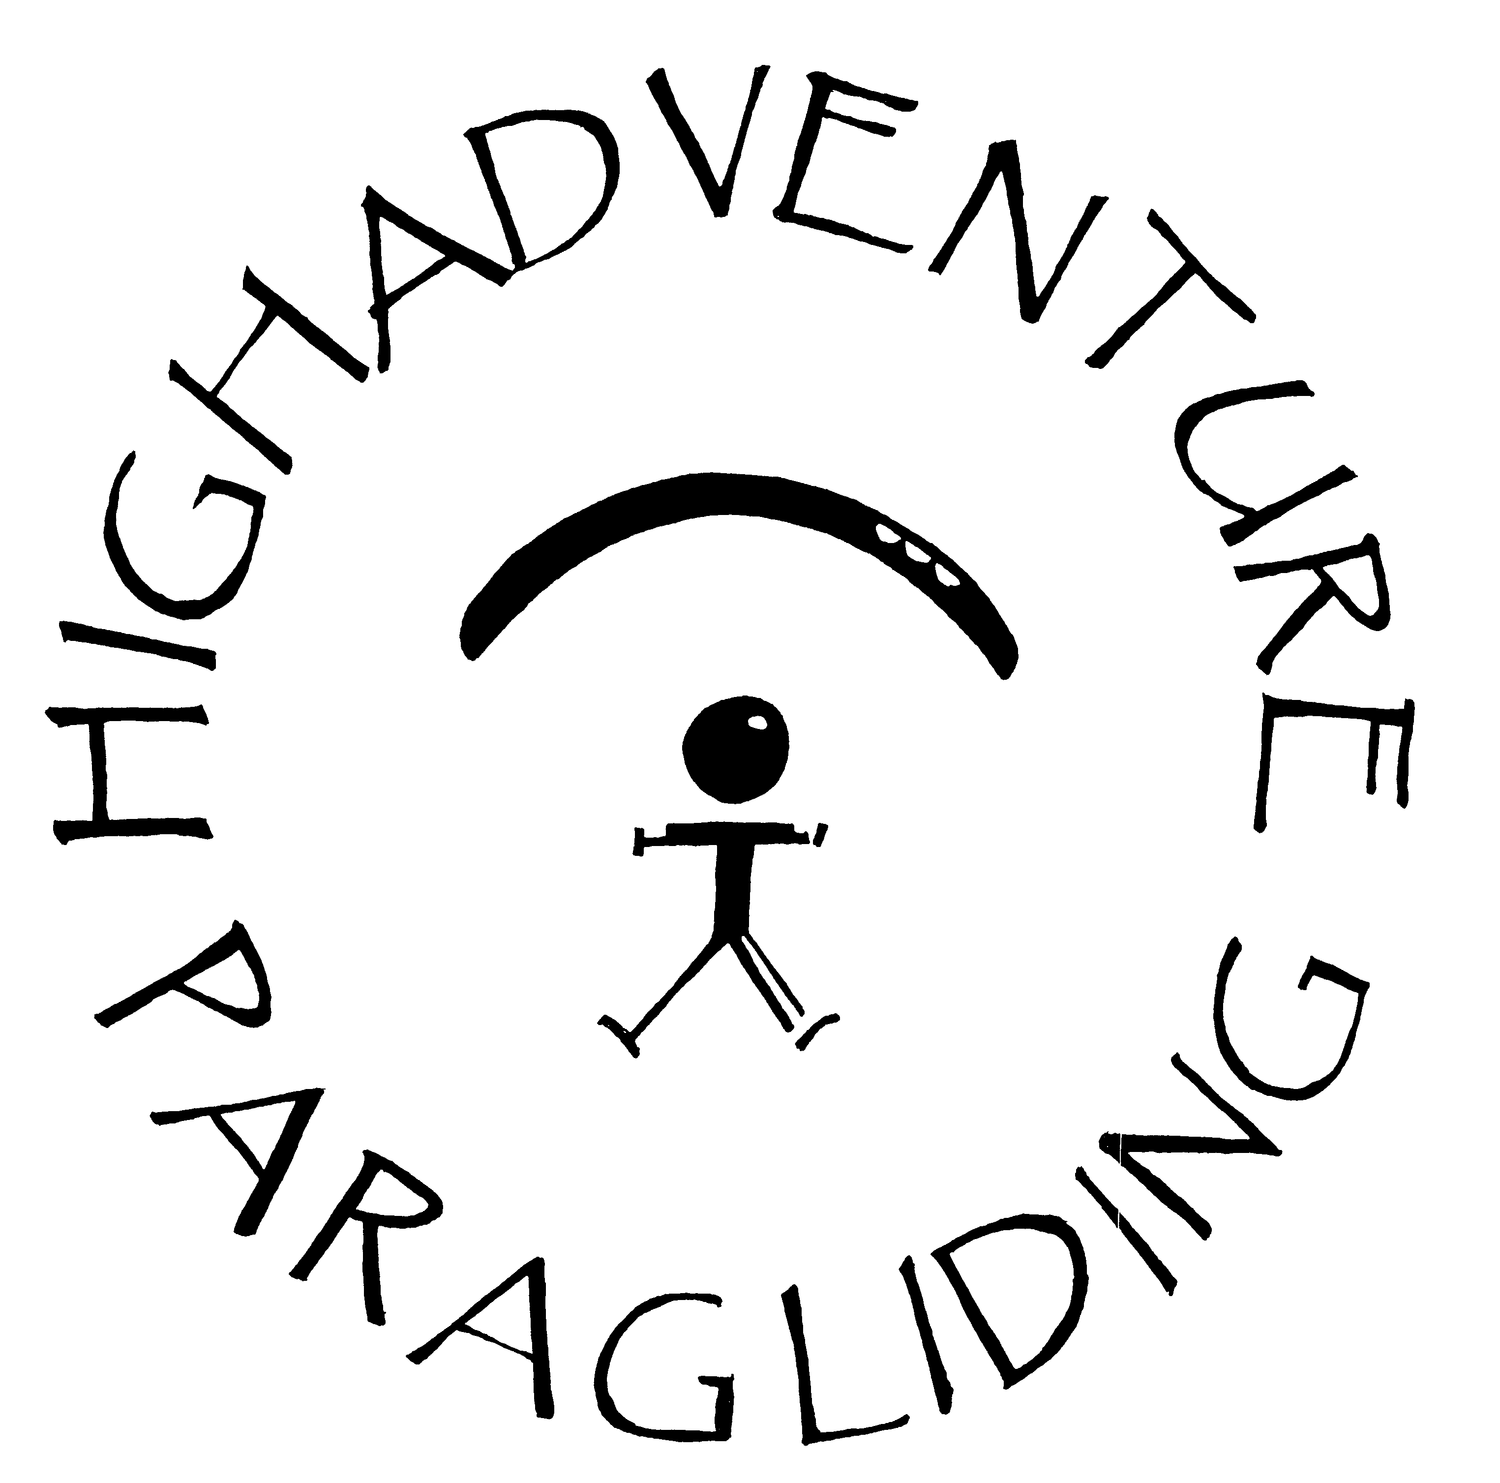 High Adventure Paragliding - Learn to paraglide on the Isle of Wight